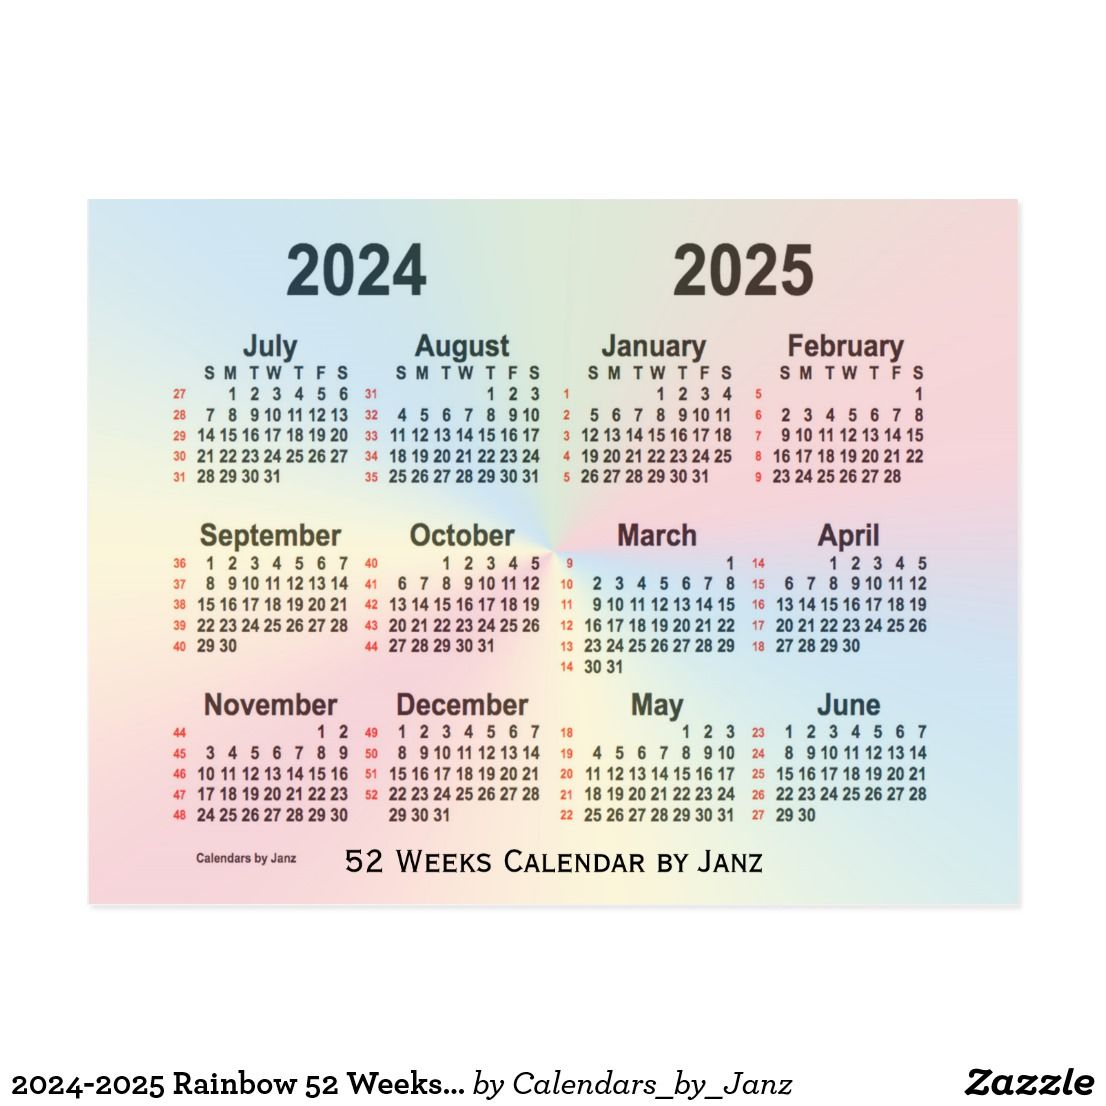 2024 2025 Rainbow 52 Weeks Calendar By Janz Postcard Zazzle Com Calendar Design Custom Calendar Postcard